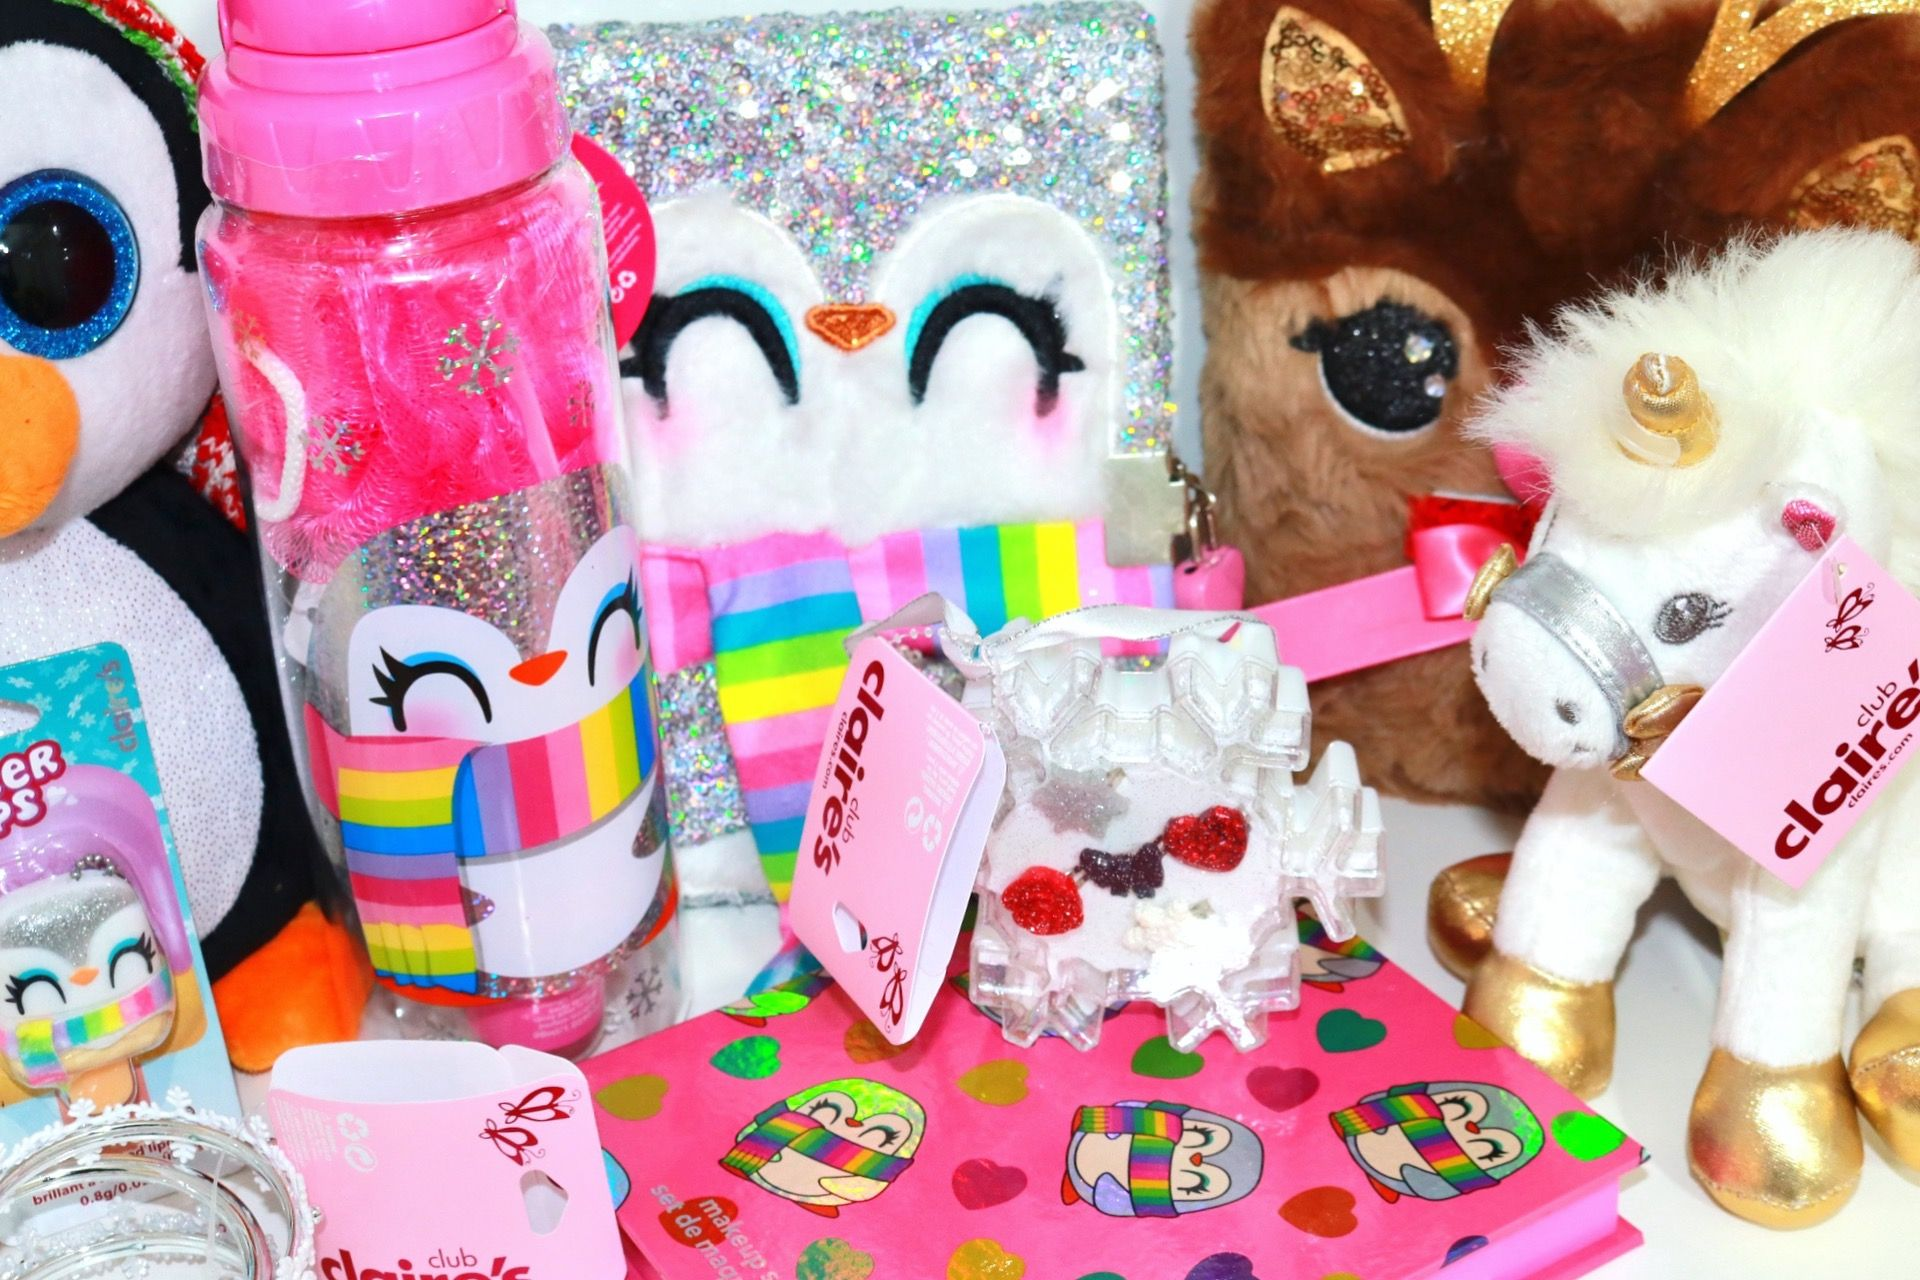 Claire's Plush Toy Unicorn, Makeup Kit, Pucker Pops, Water